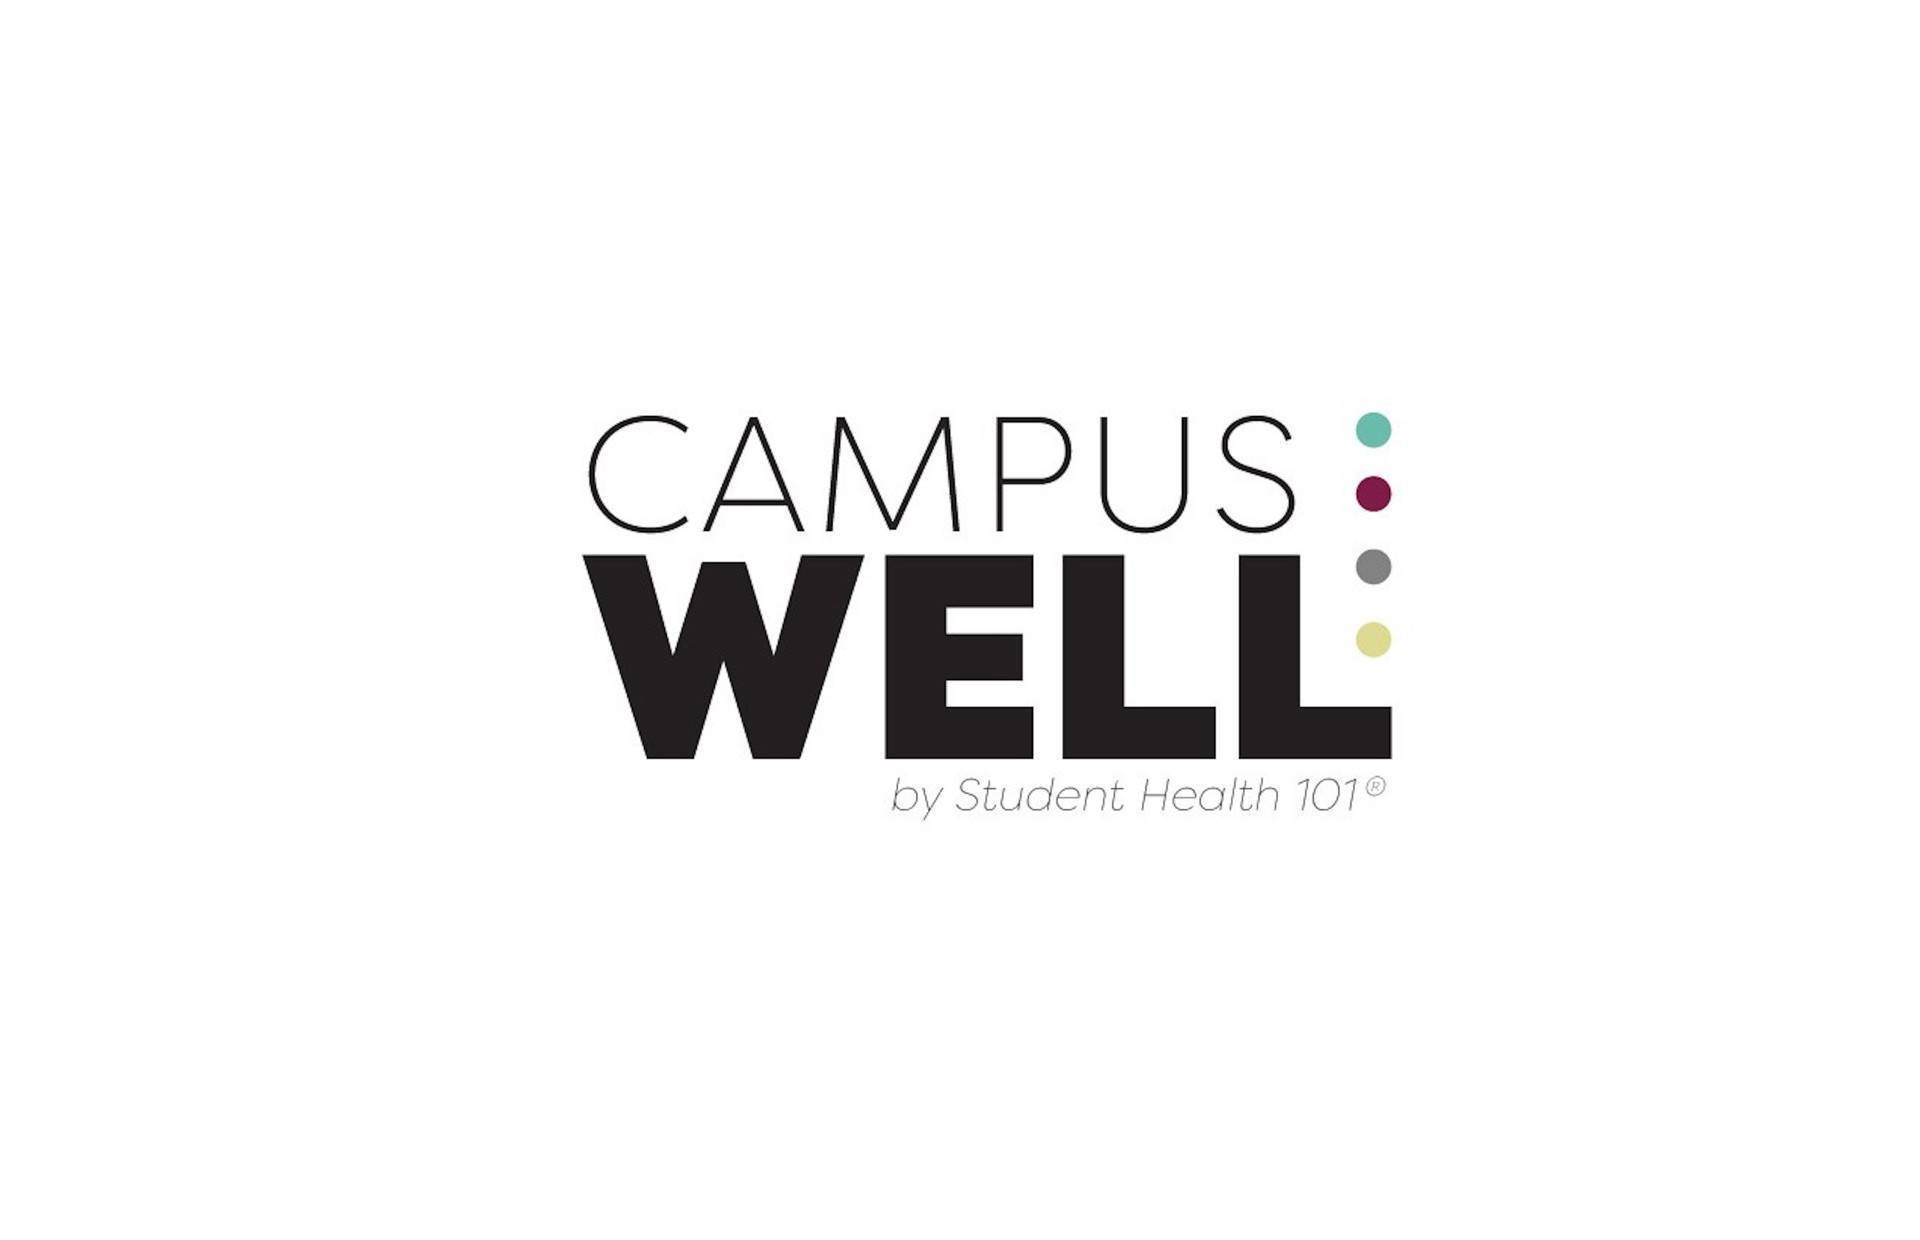 Campus Well ~ All About Online Dating